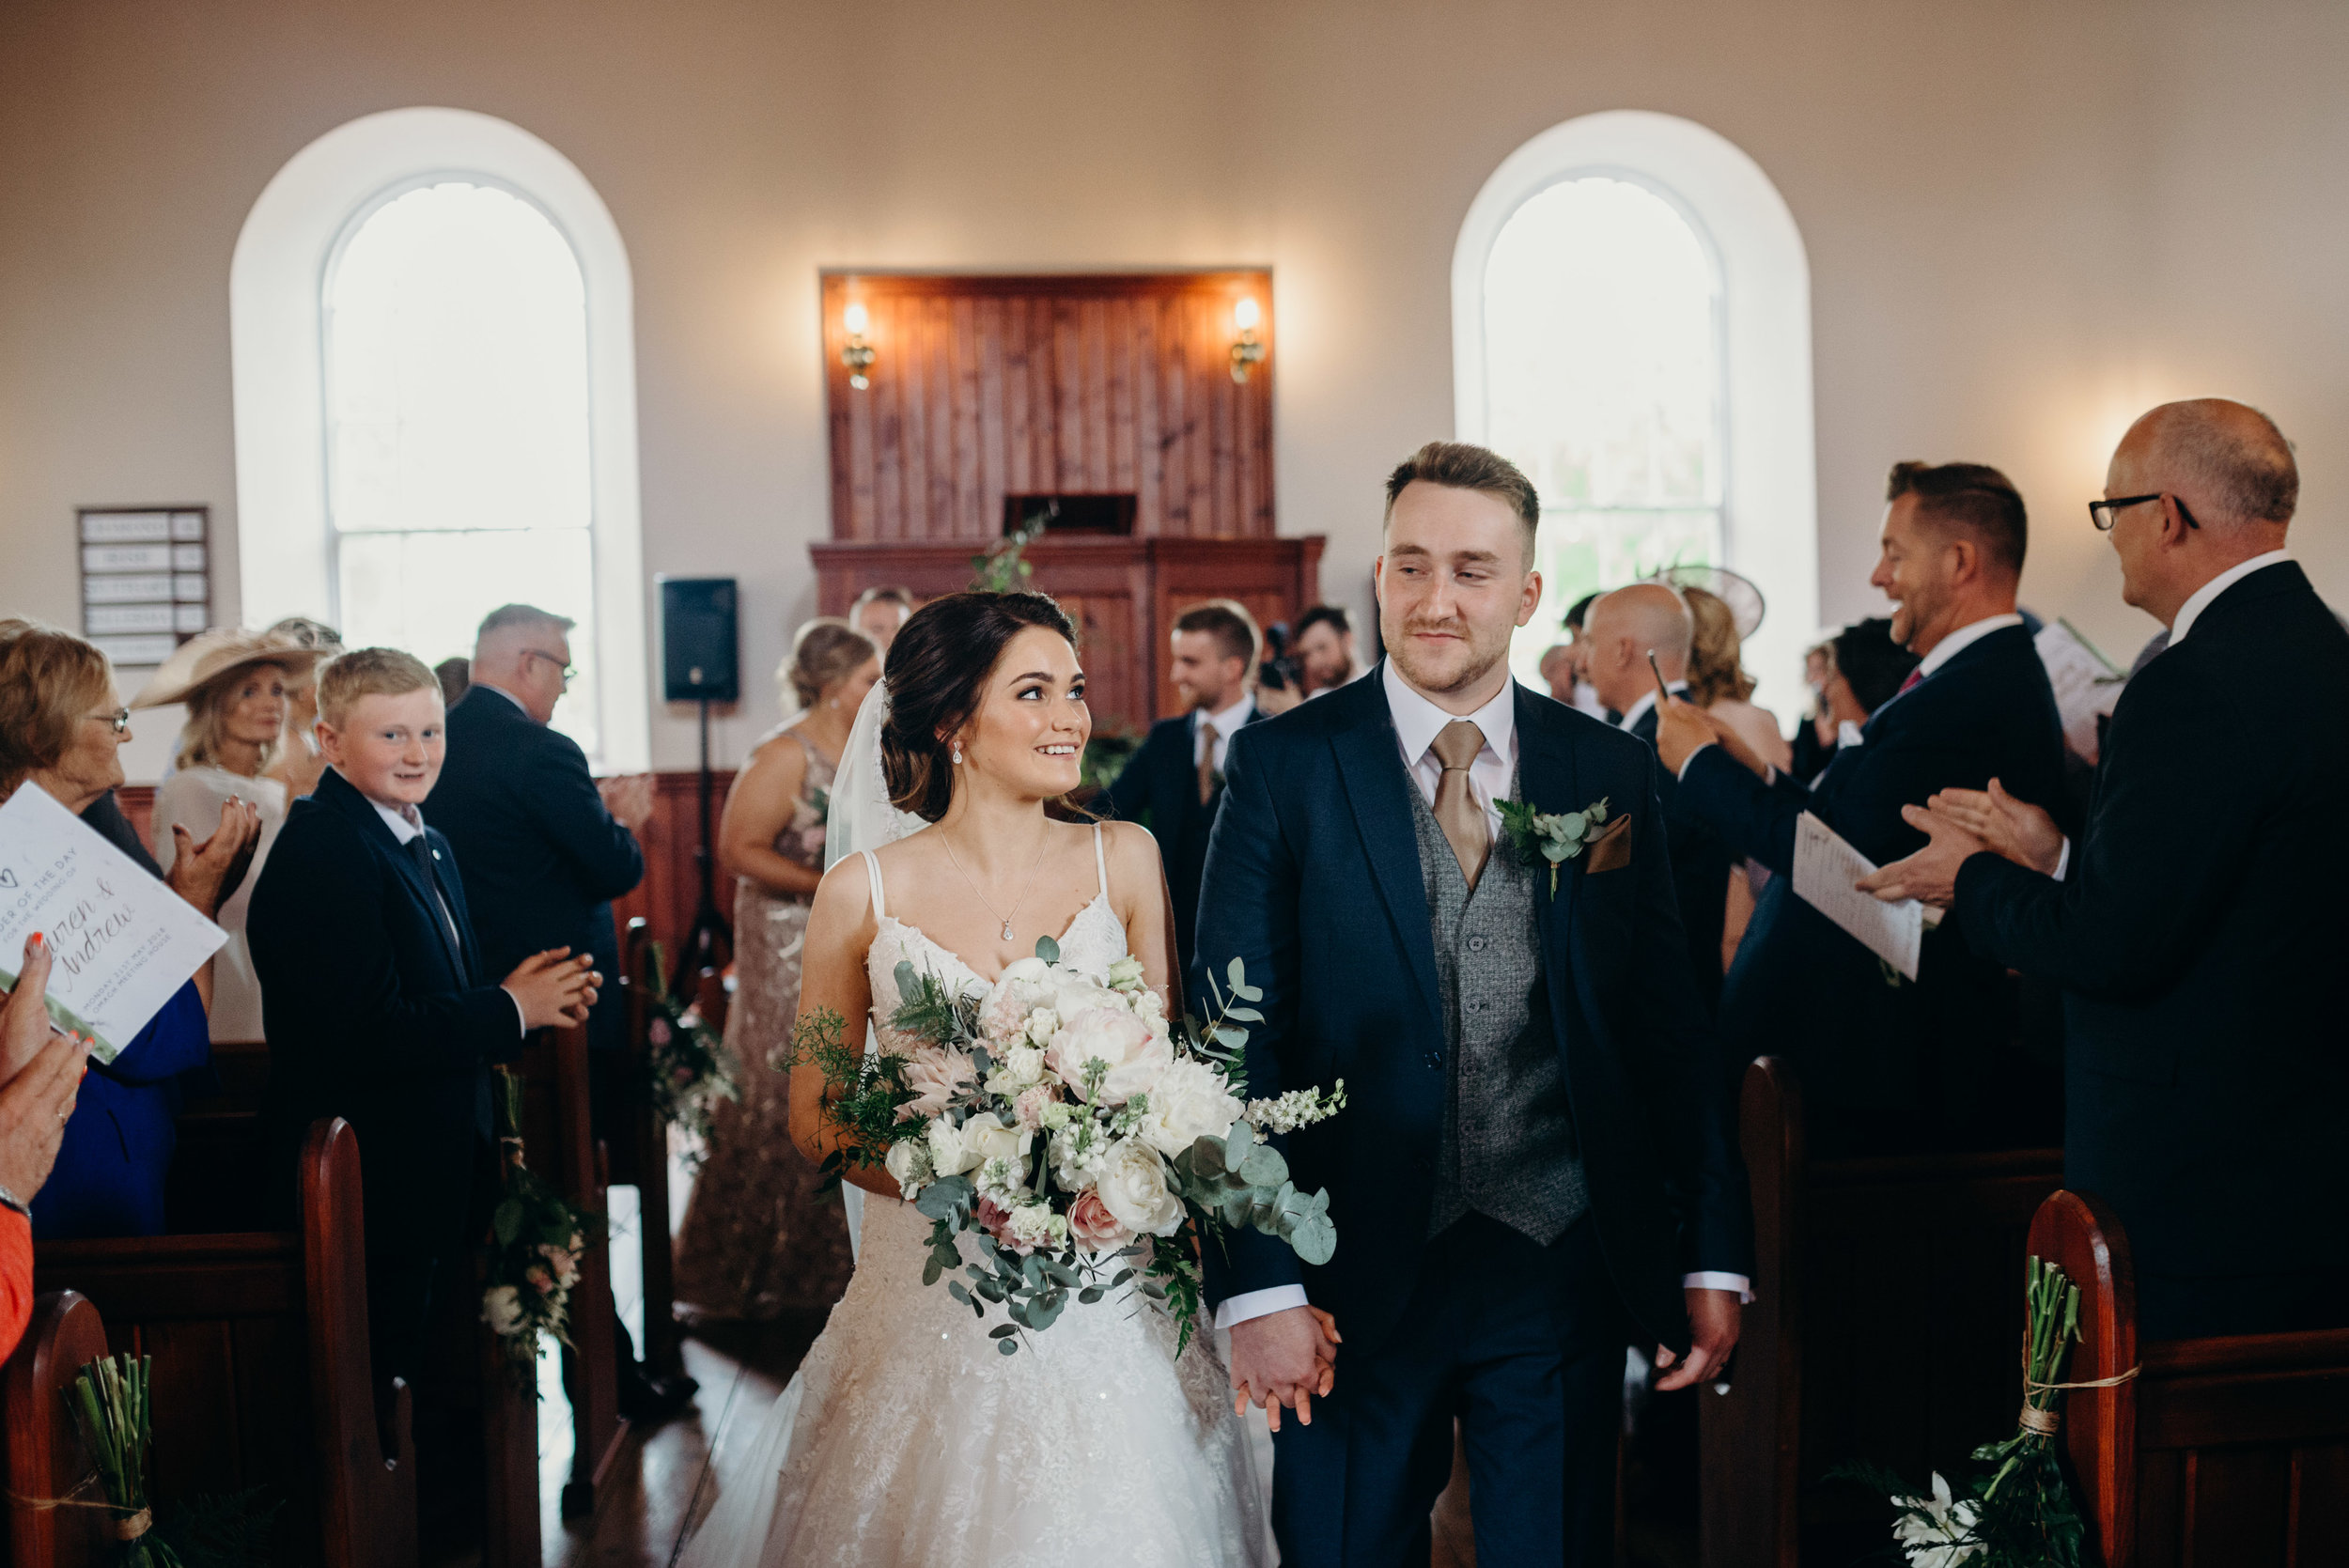 clandeboye wedding photos-39.jpg